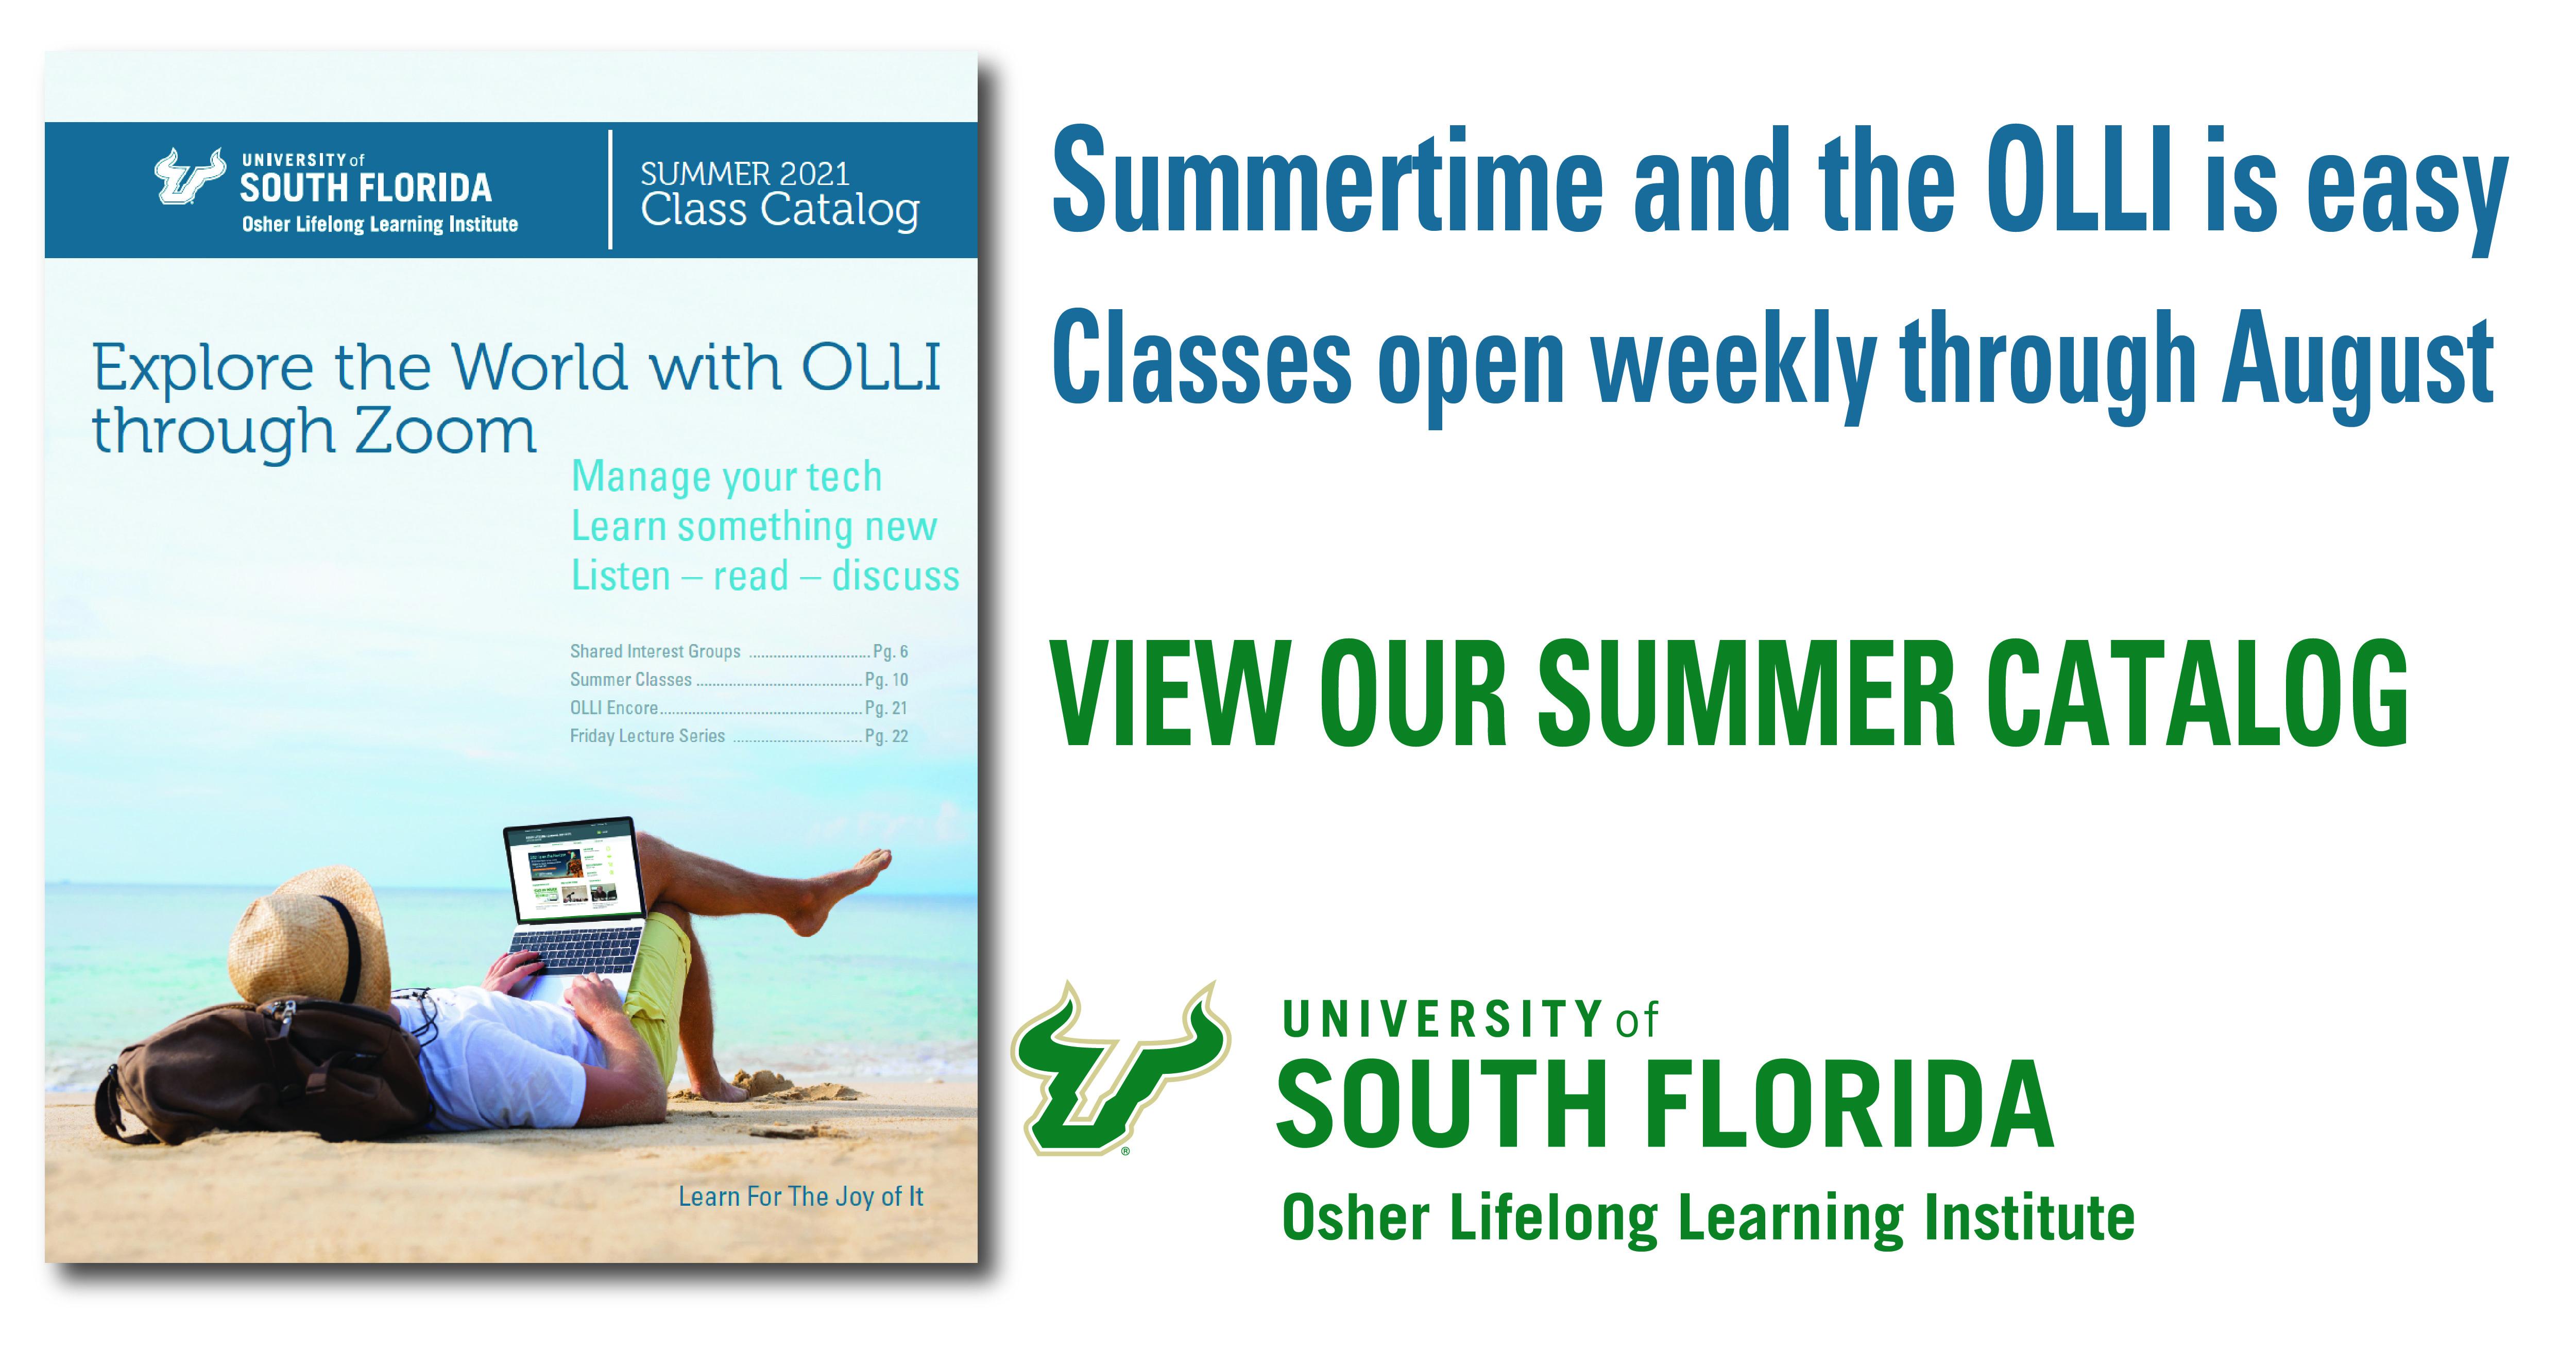 Summertime at OLLI